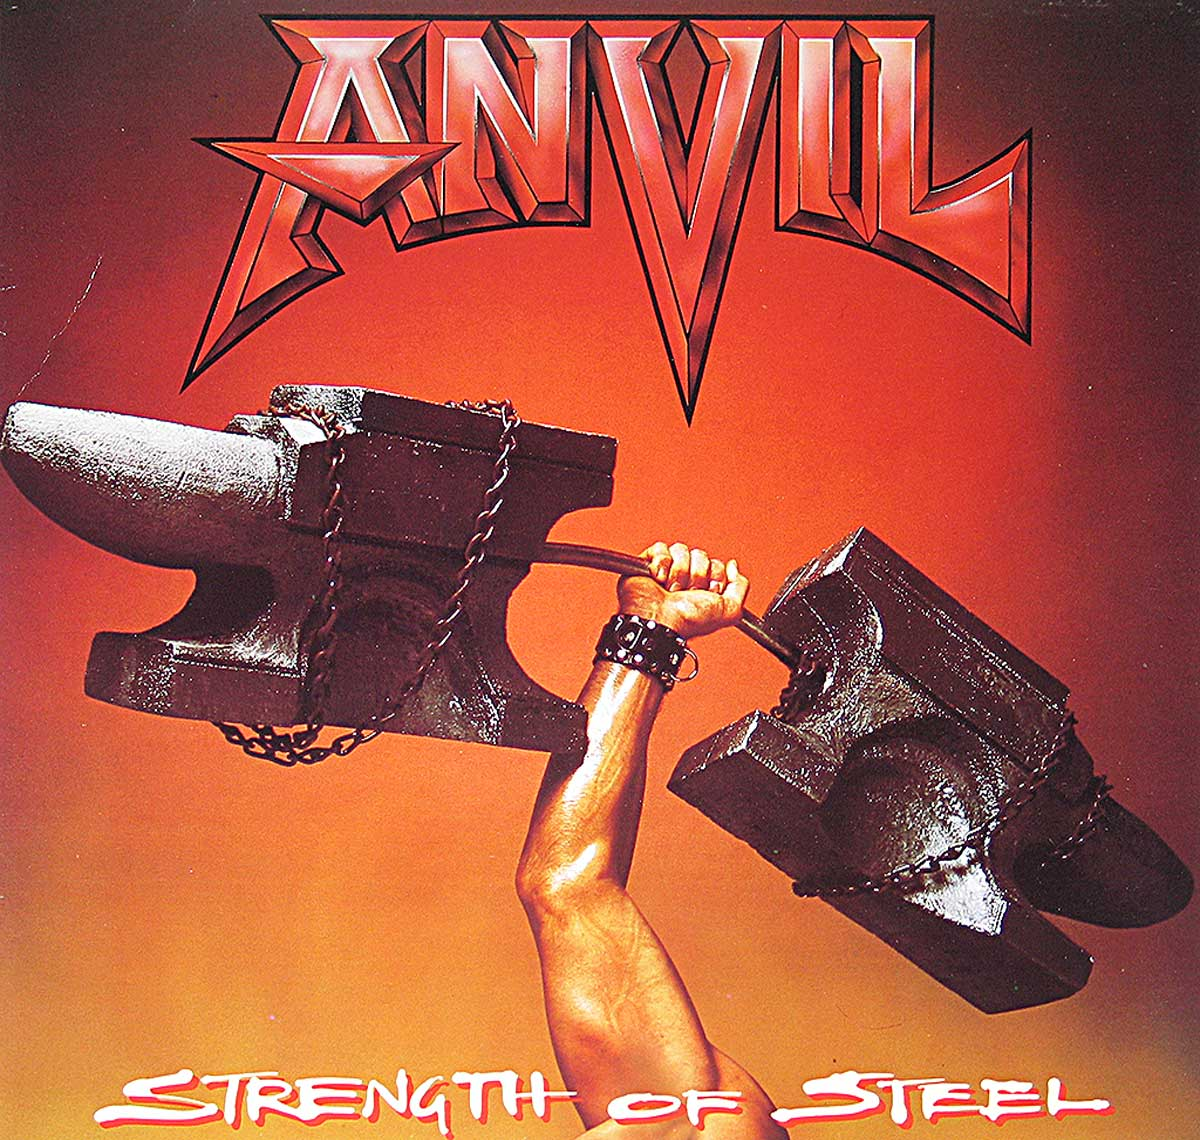 large photo of the album front cover of: Anvil Strength of Steel